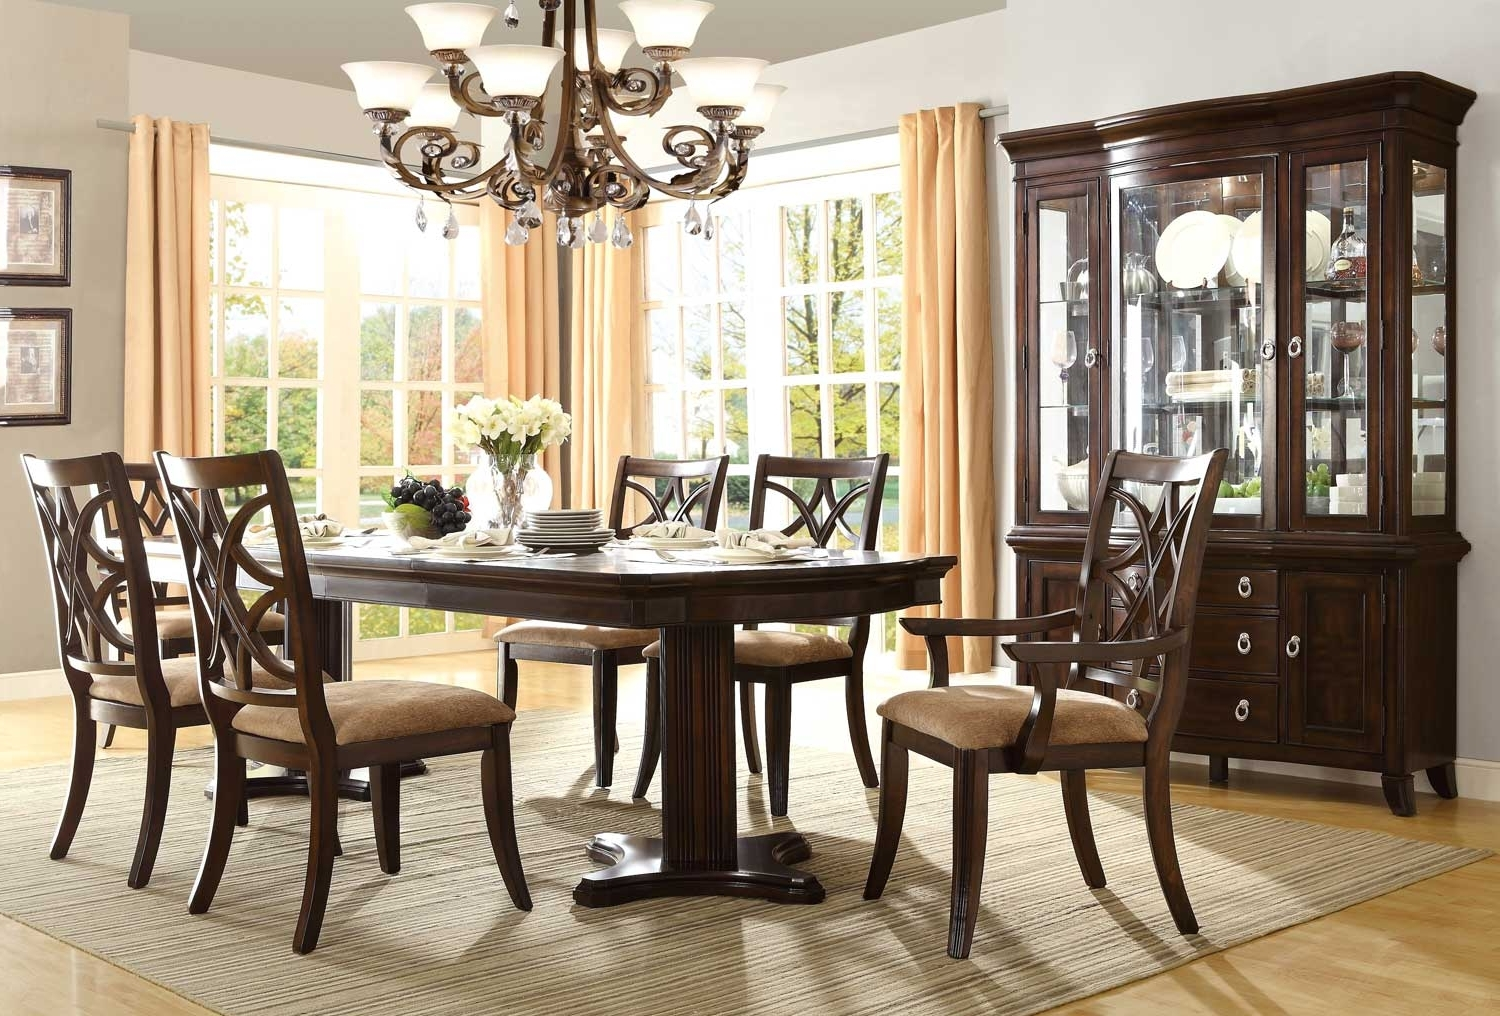 Pedestal Dining Tables And Chairs Inside Most Popular Homelegance Keegan Double Pedestal Dining Set – Neutral Tone Fabric (Gallery 15 of 25)